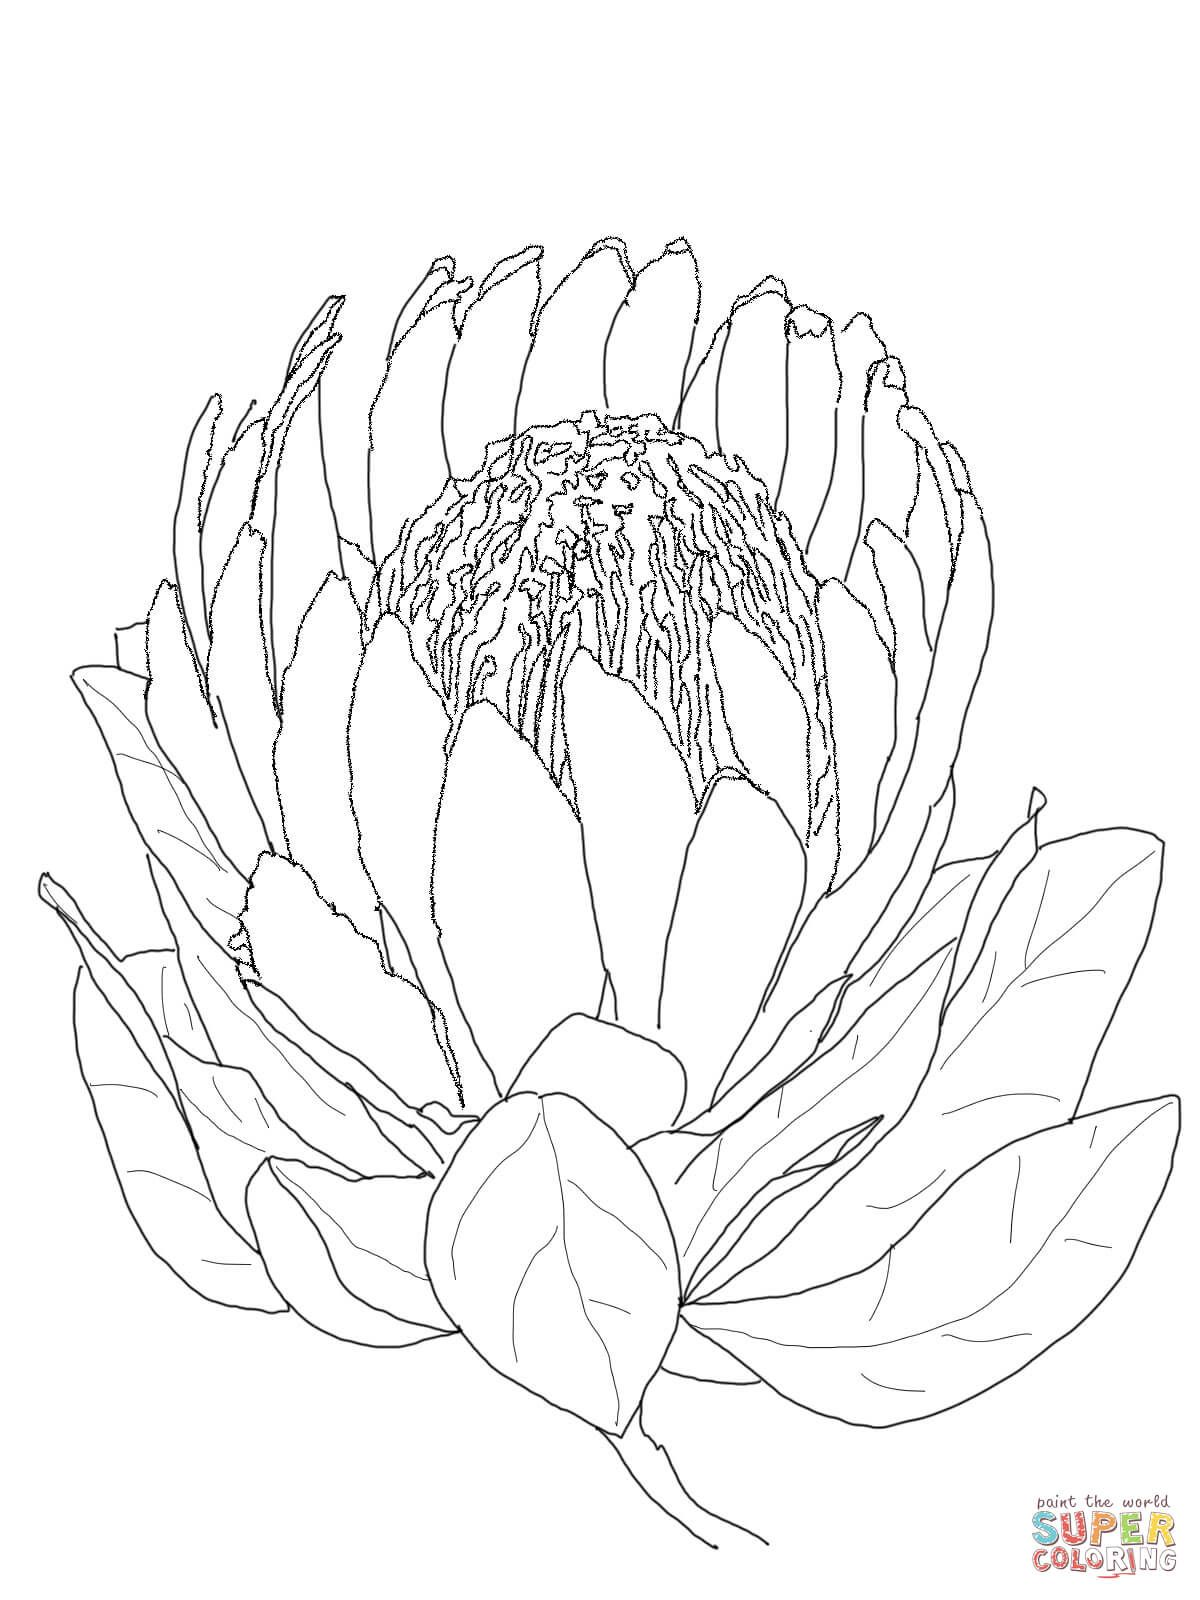 Protea Flower Coloring Page From Protea Category Select From 29179 Printable Crafts Of Cartoons Nature Animals Bibl Protea Art Flower Drawing Protea Flower